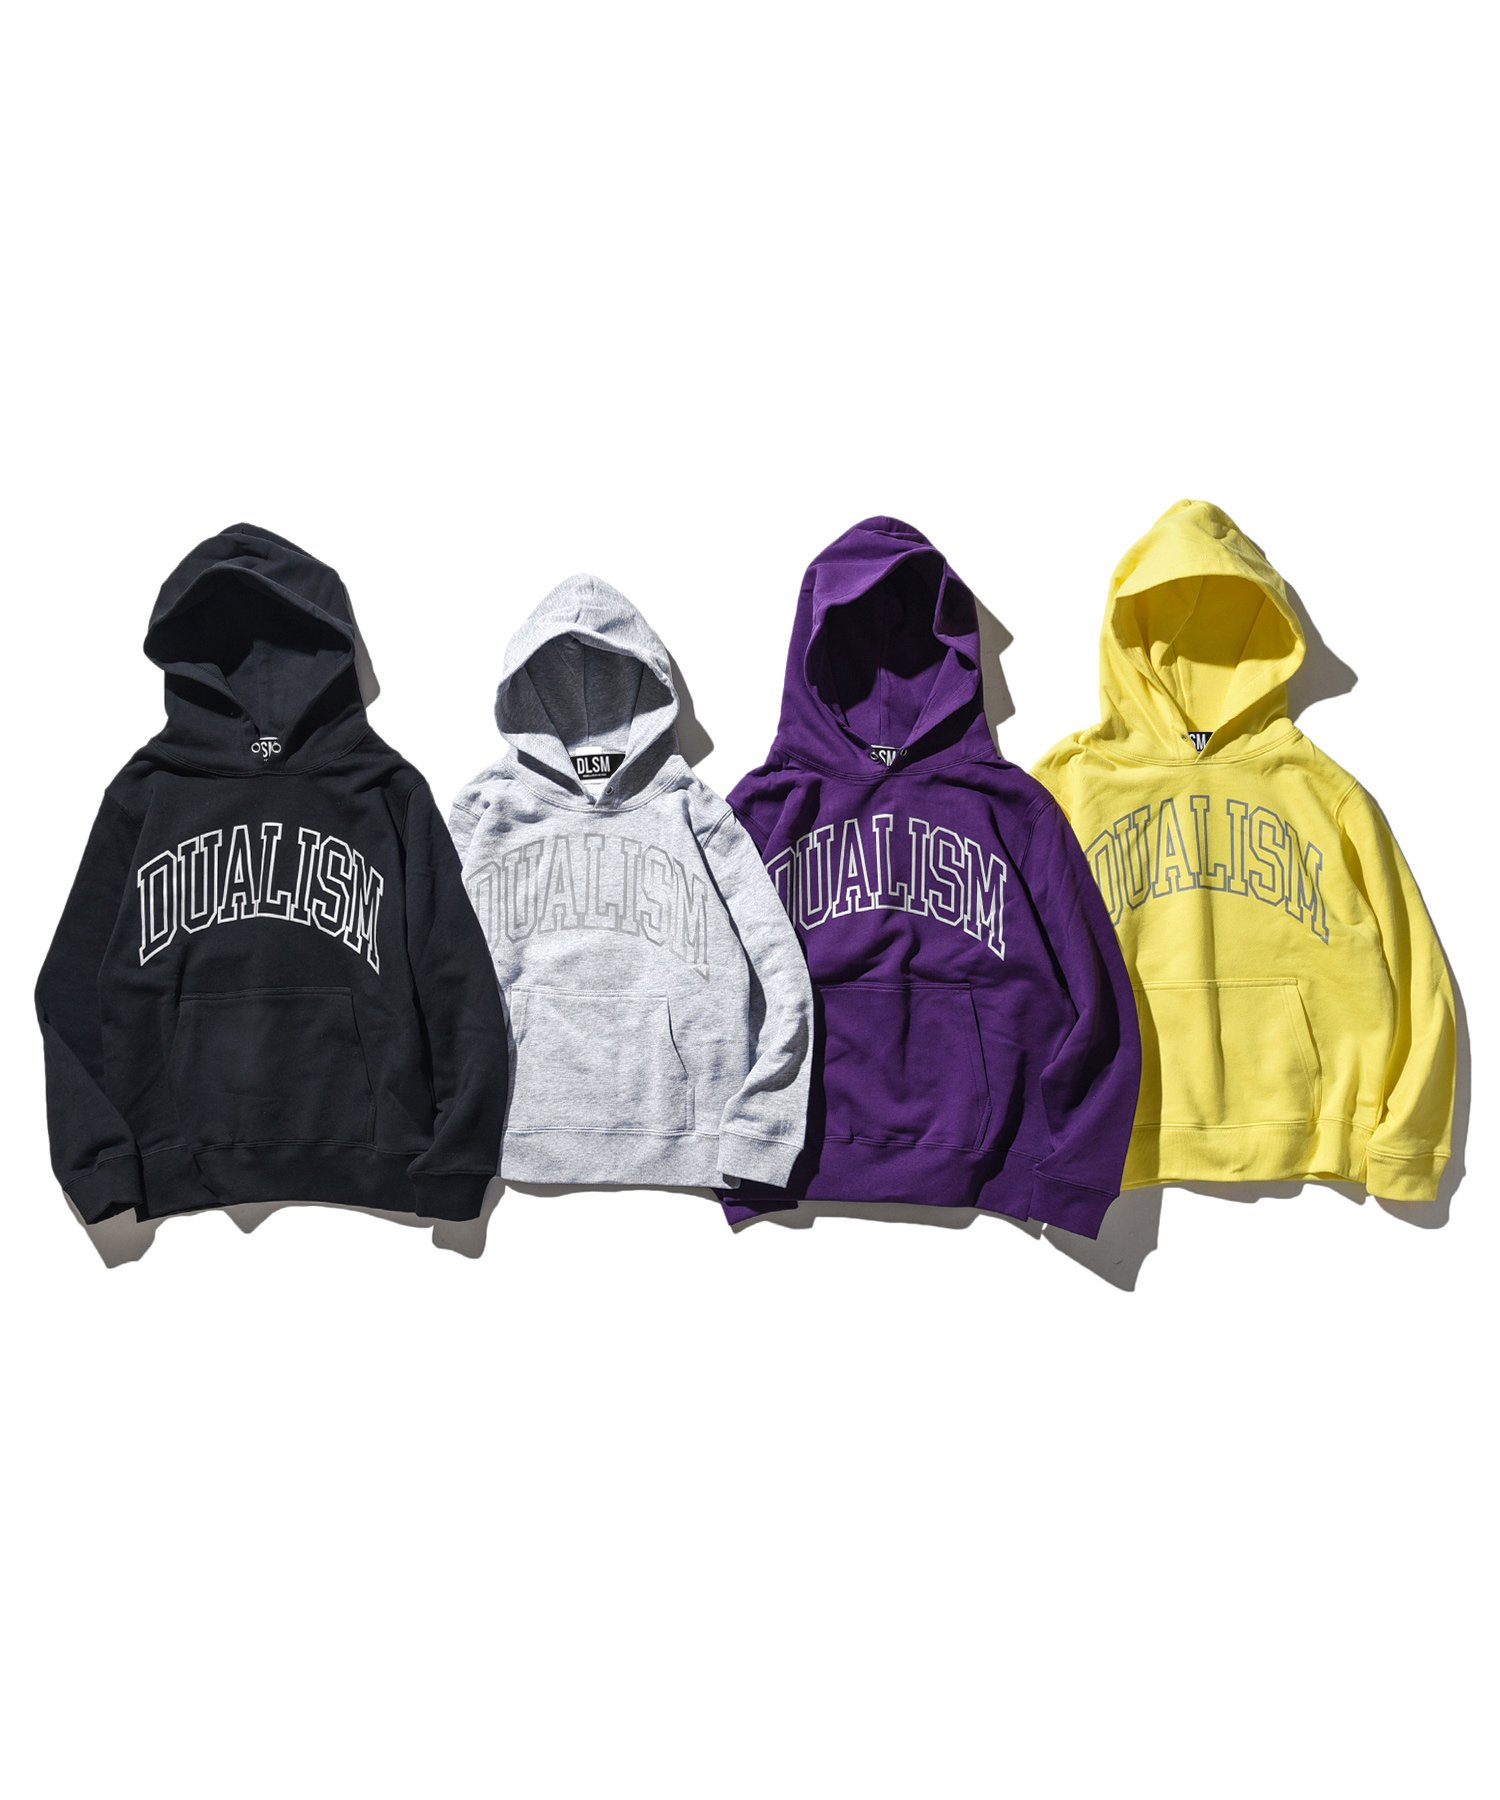 《KIDS SIZE》DUALISM OUTLINE ARCH LOGO HOODIE